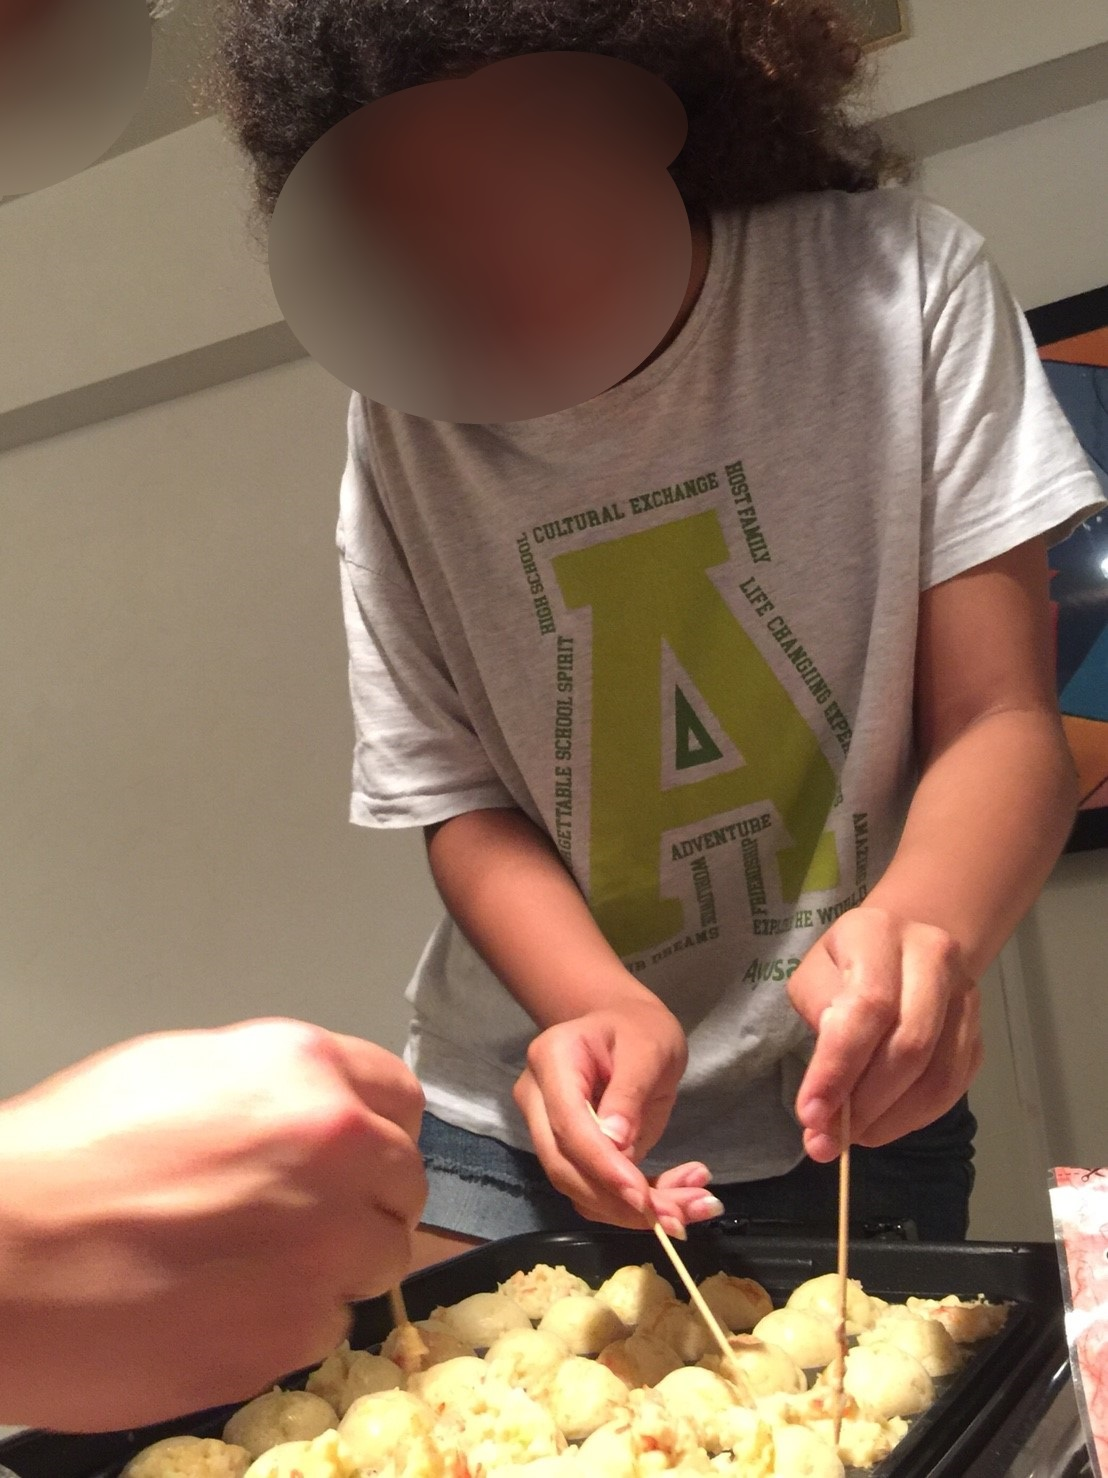 10 Me trying to make some Takoyaki wearing the AYUSA shirt (coincidence...?!)